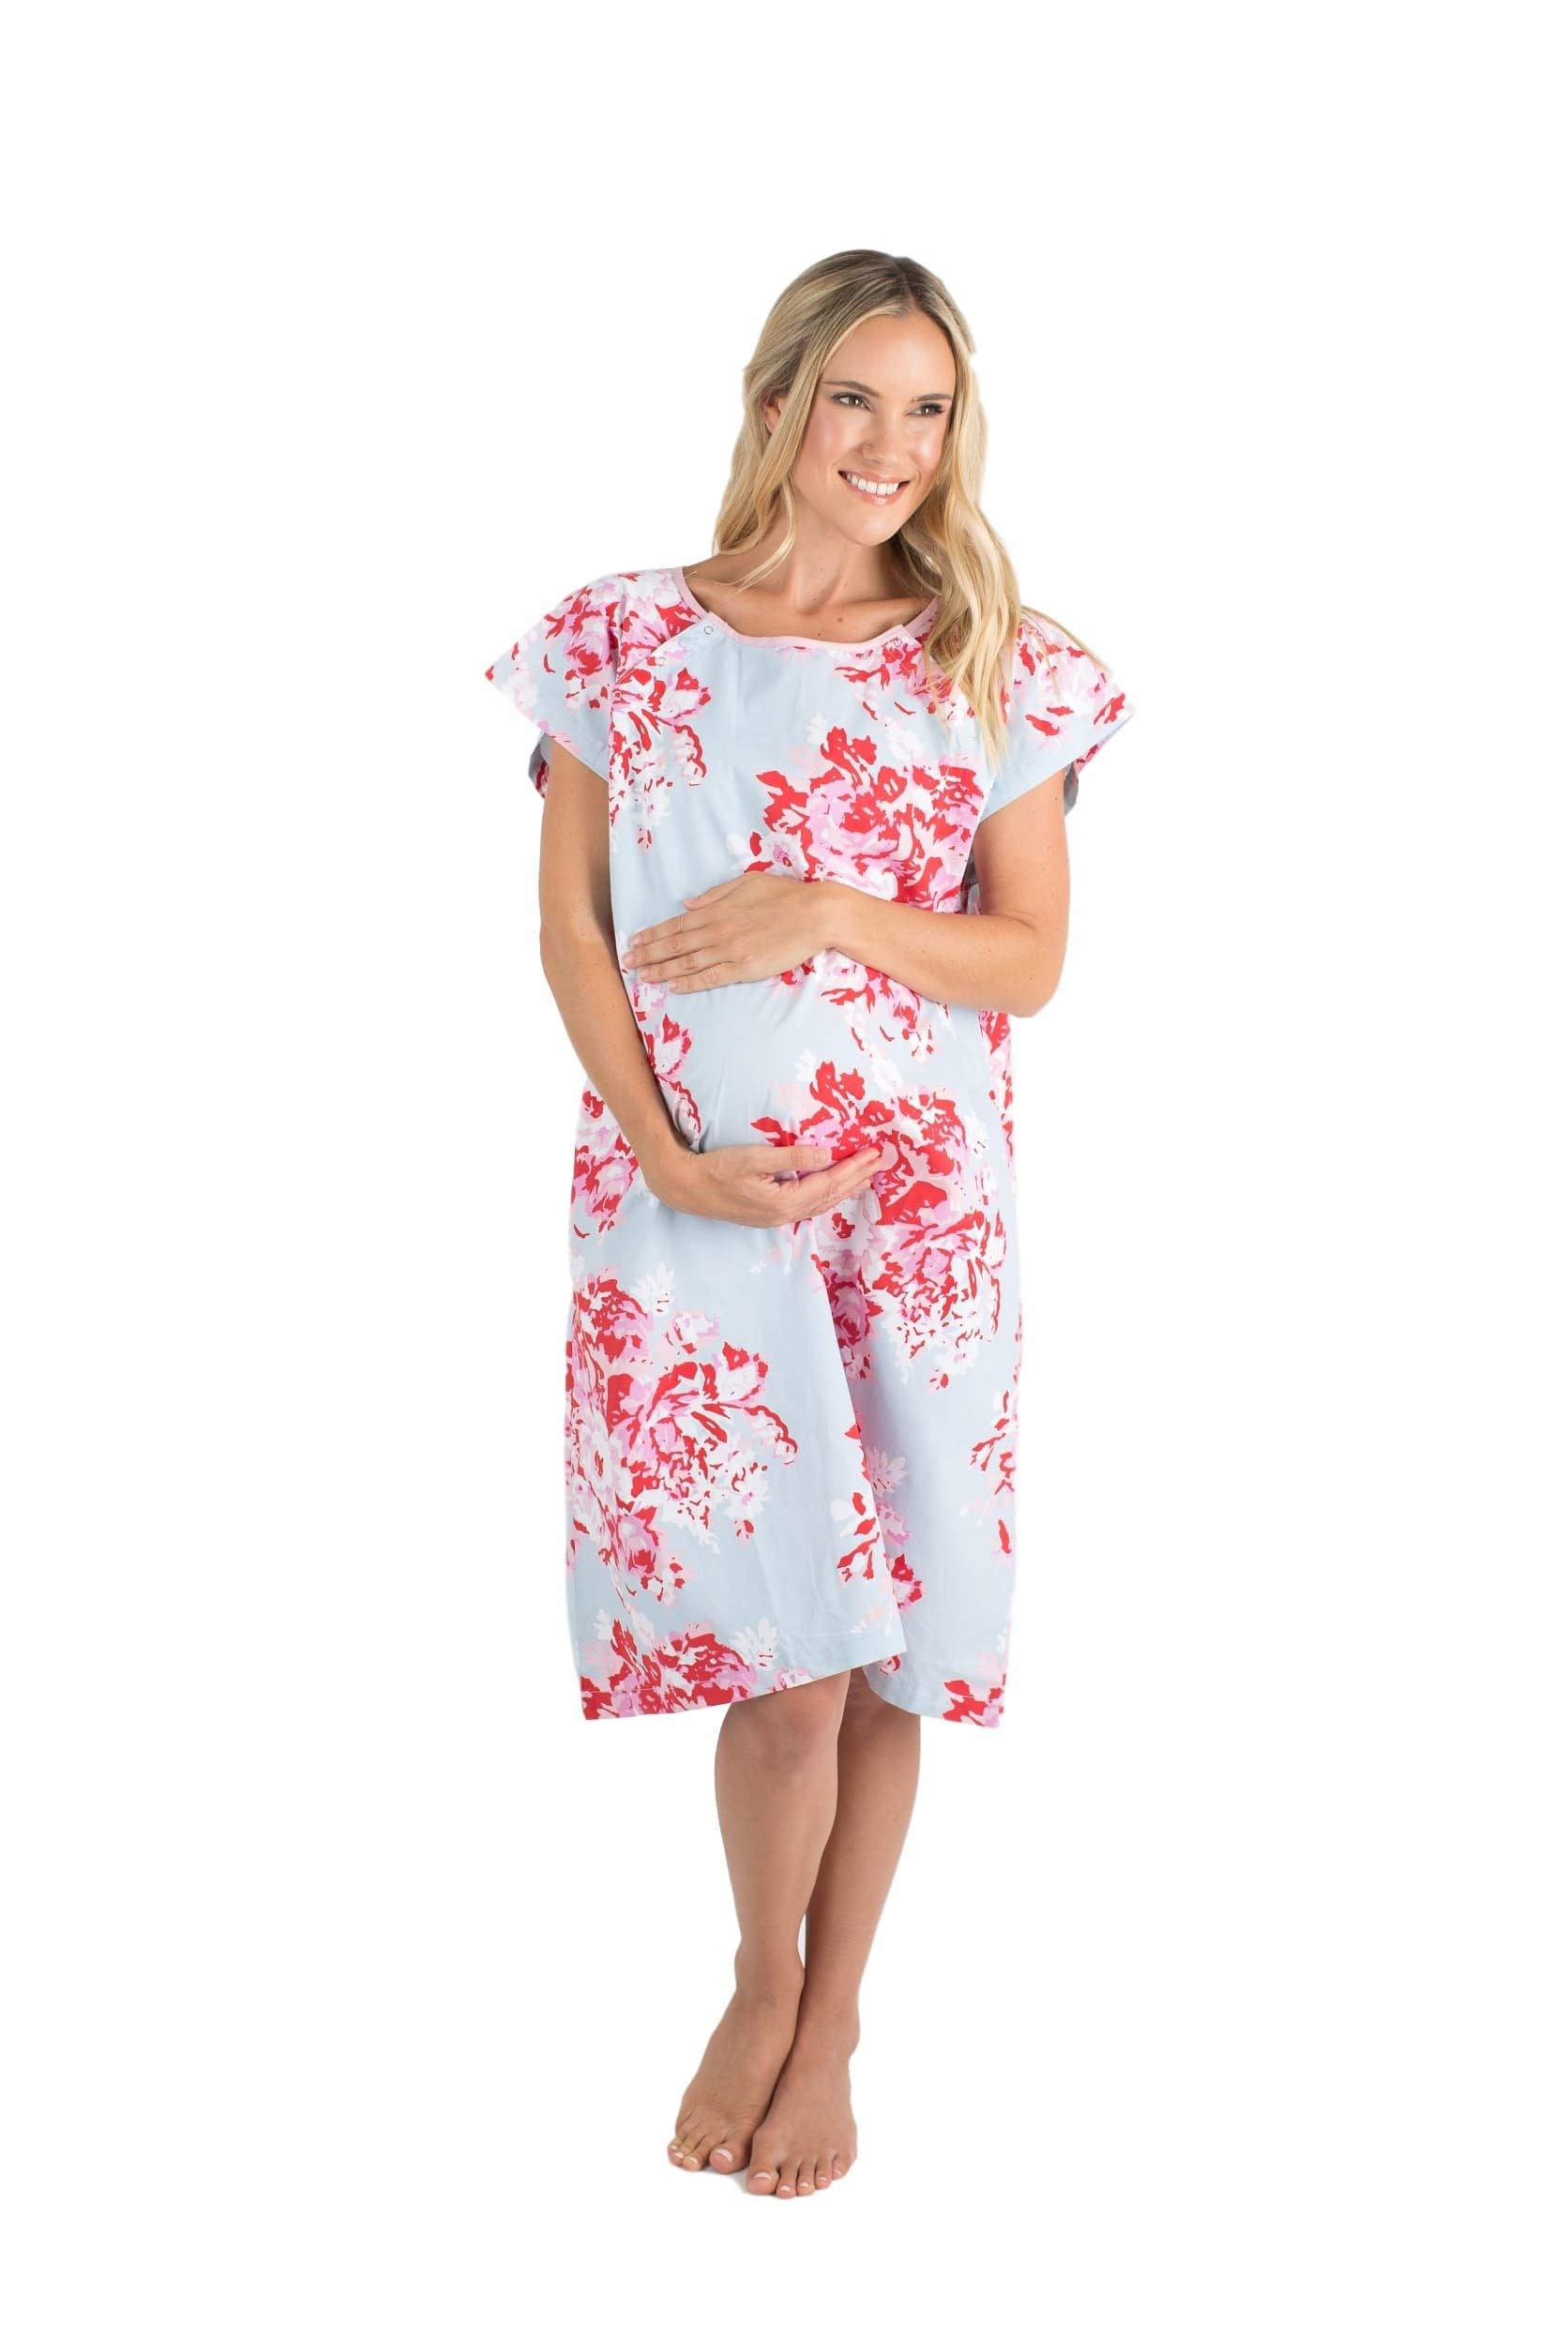 Gownies - Labor & Delivery Maternity Hospital Gown by Baby Be Mine ...